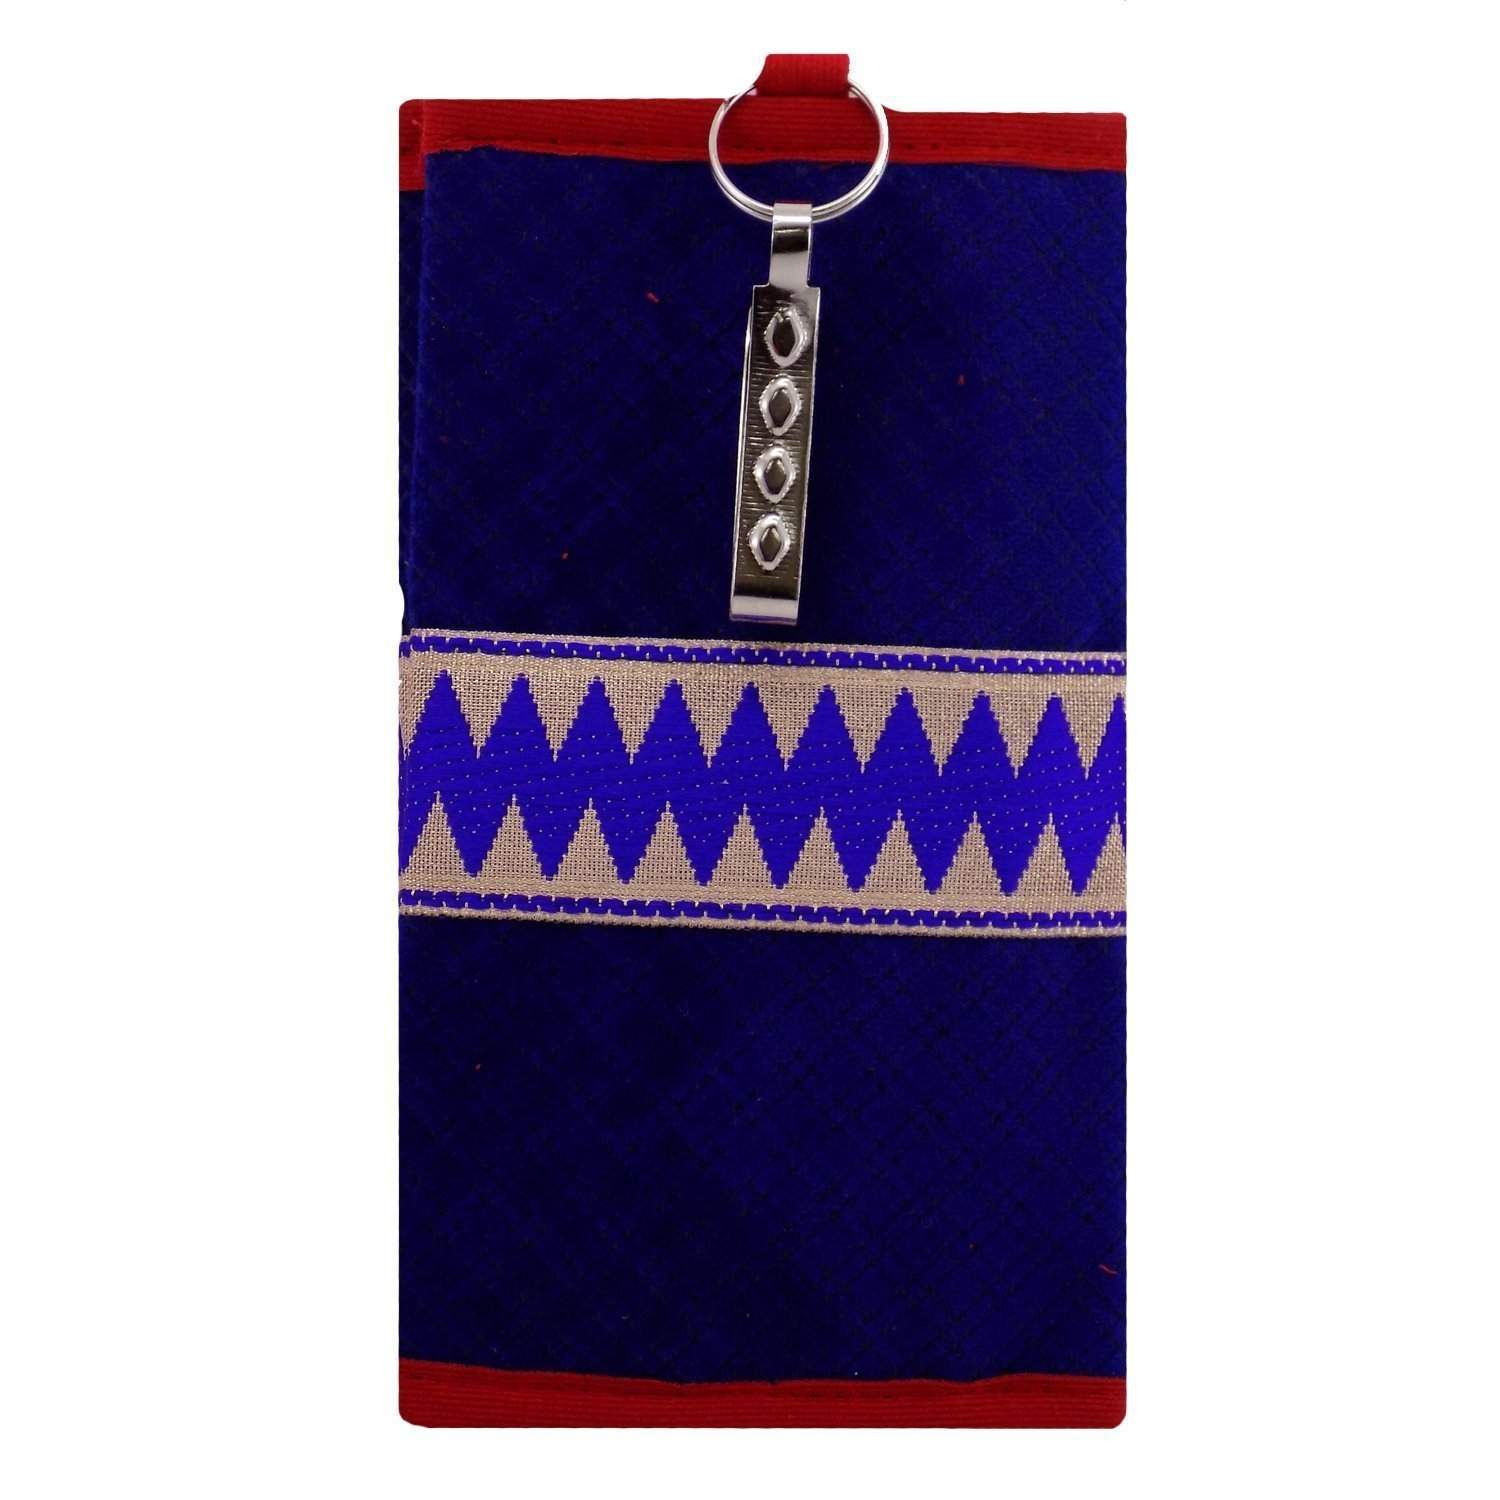 Waist Clip Mobile Pouch (Blue) - Bagaholics Gift